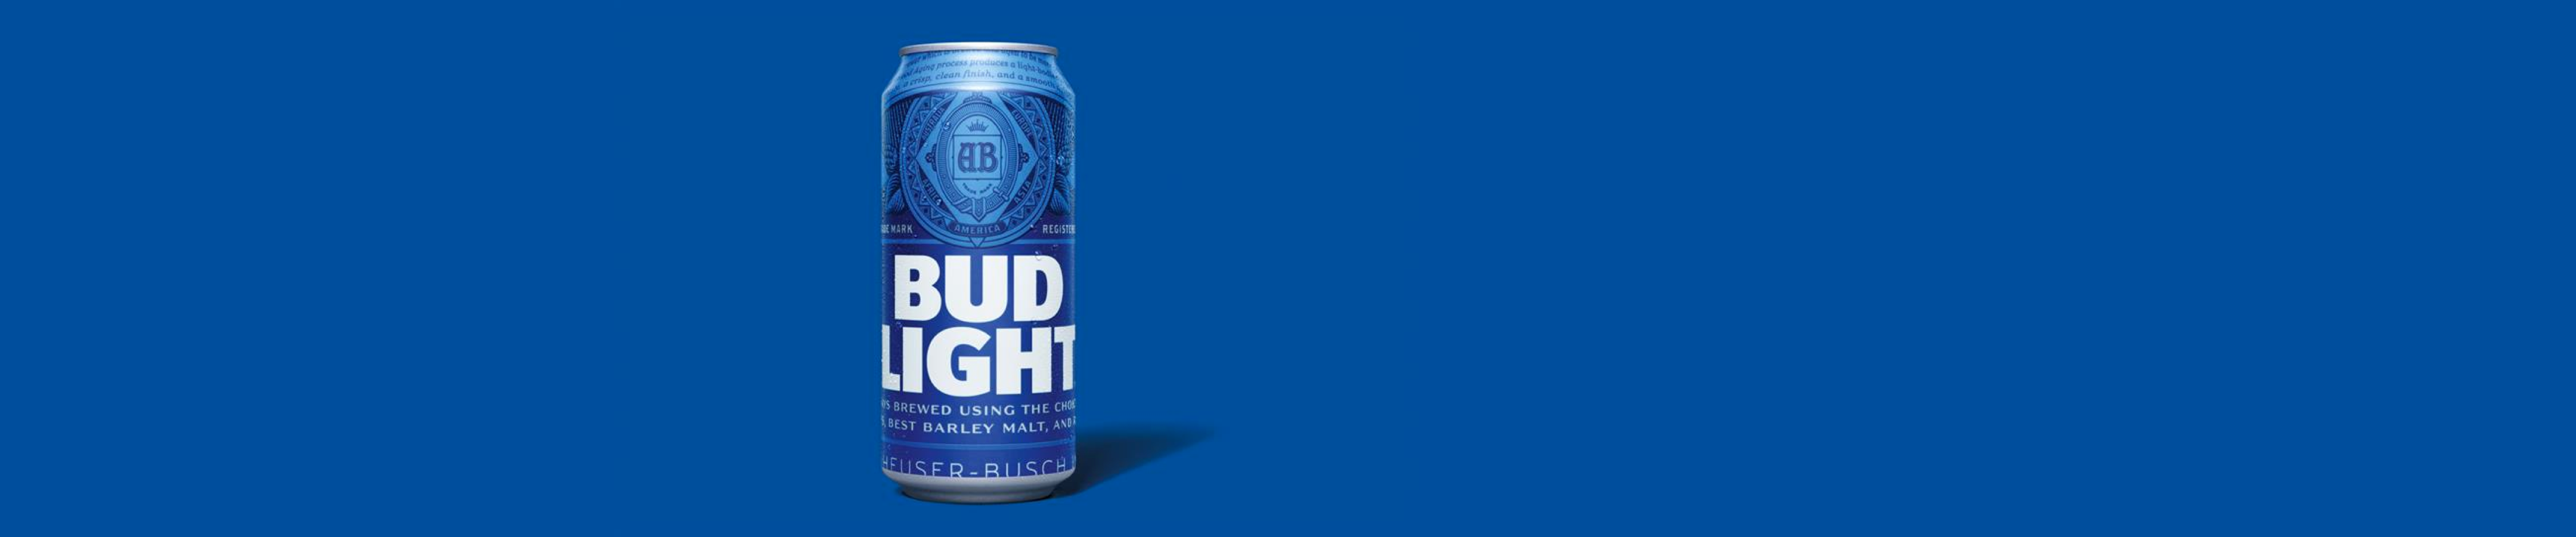 Since 1982, Bud Light has grown to become the best-selling beer in the United States and the No. 1 light beer in the world. Golden in color with delicate aromas of malt and hops. Subtly fruity and citrus taste notes with a fast, clean finish. Buy Bud Light online now from nearby liquor stores via Minibar Delivery.